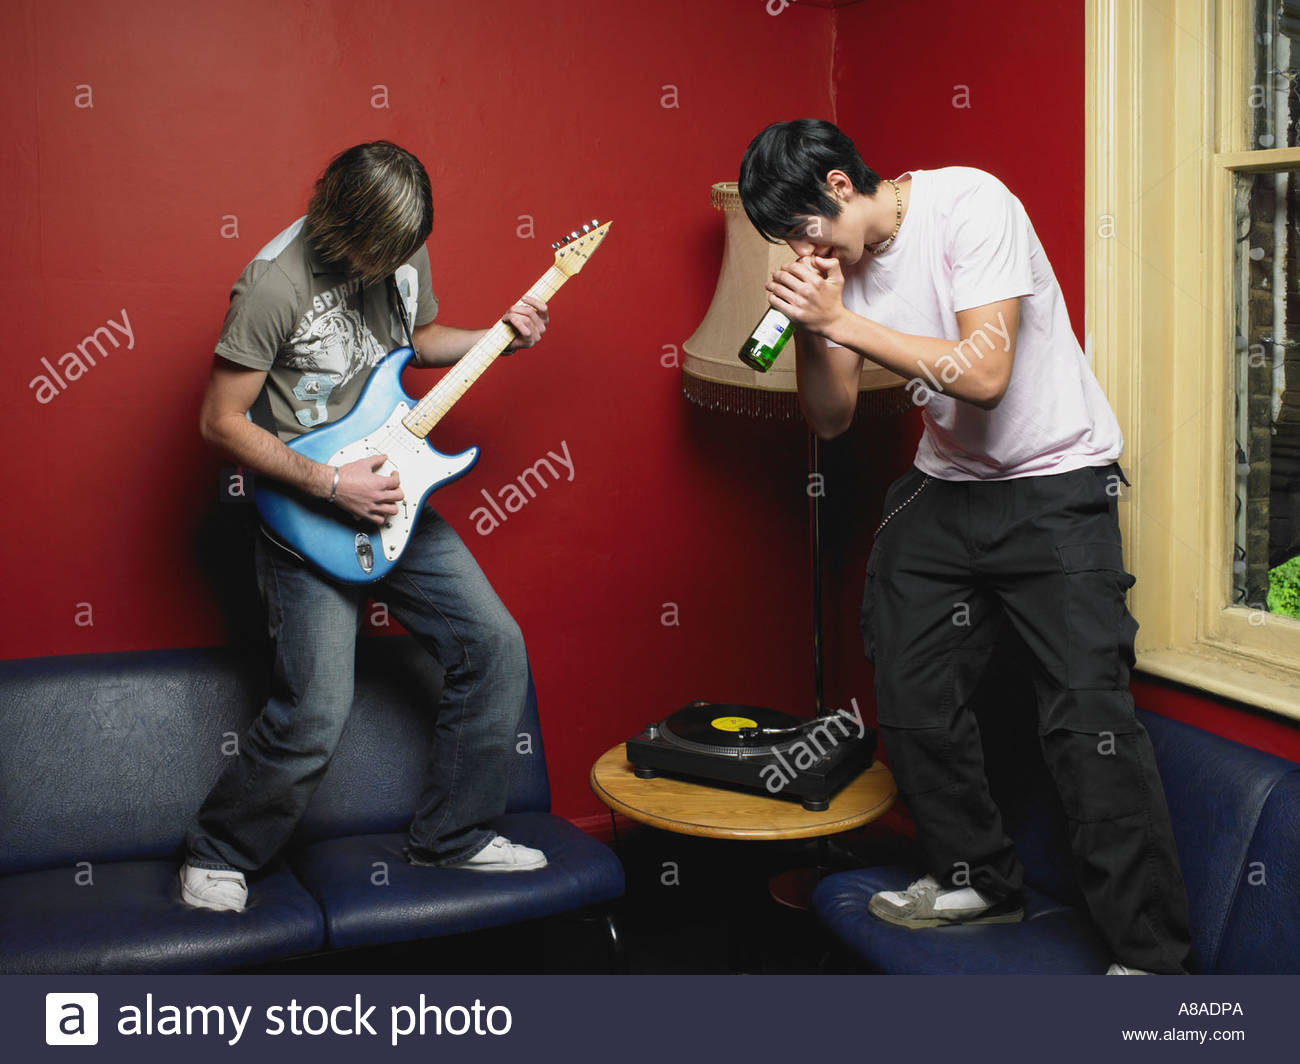 Two friends playing guitar and singing - Stock Image